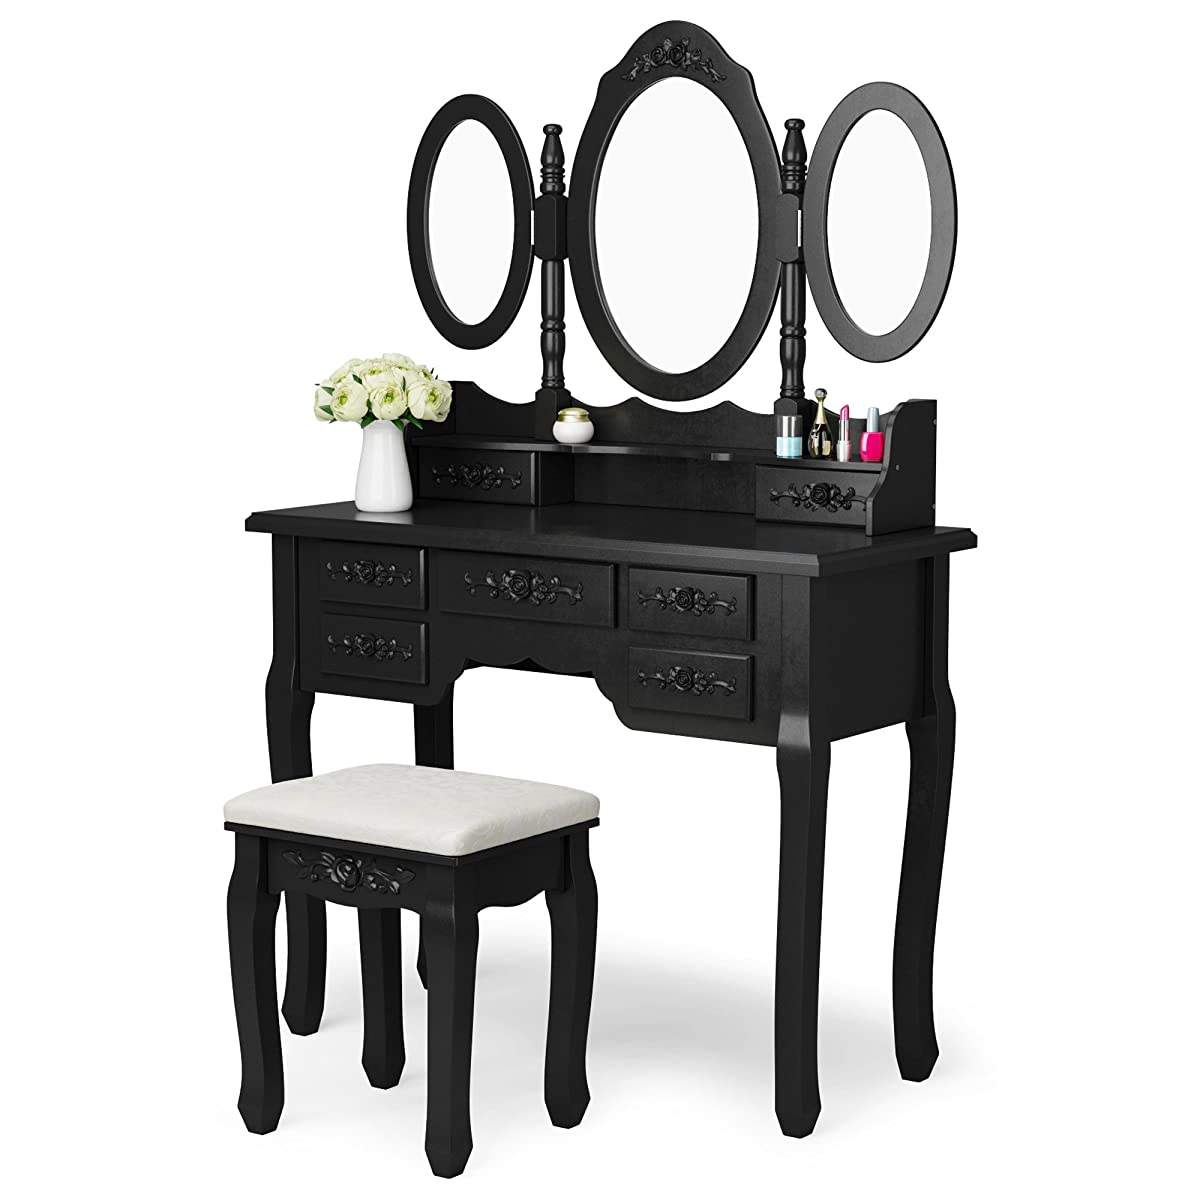 Tribesigns Wood Makeup Vanity Table Set with 3 Mirror & Stool Bedroom Dressing Table Makeup Desk, Black